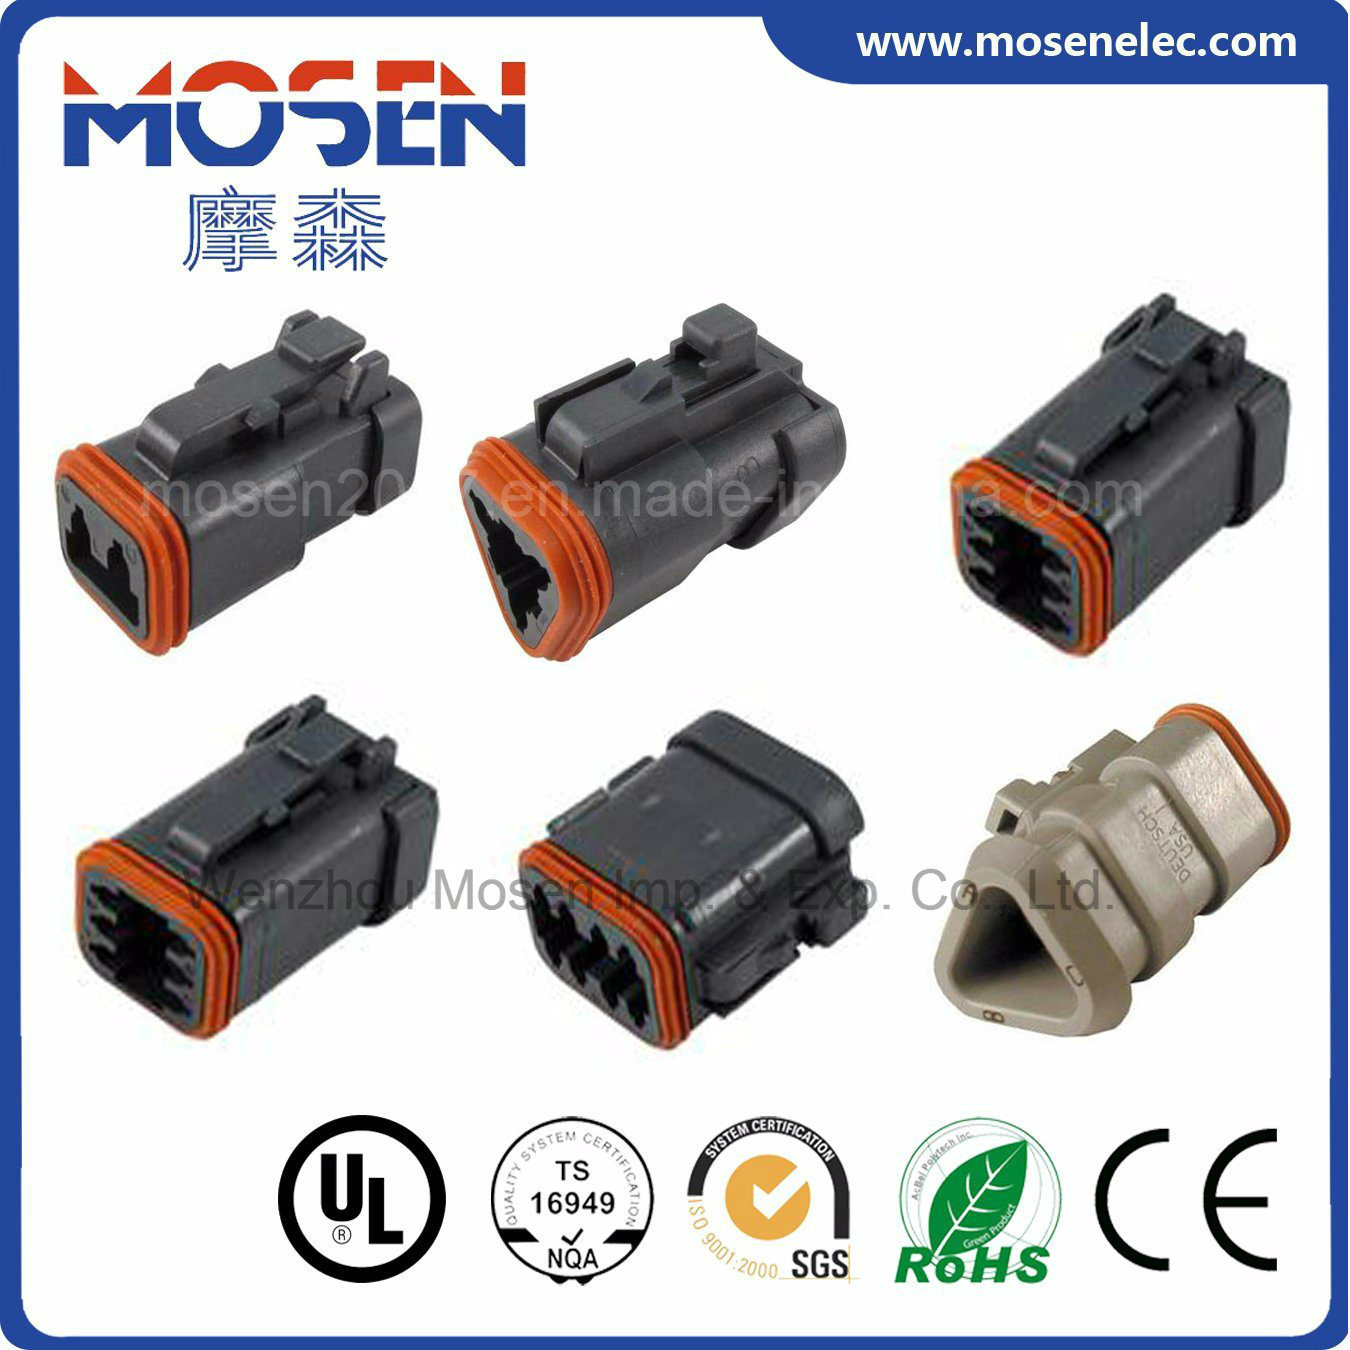 hight resolution of deutsch auto connector dt06 2s e005 dt06 3s e005 dt06 3s e008 dt06 4s e005 dt06 6s e005 dt06 8s e005cwhao7a wiring harness for car with approvals